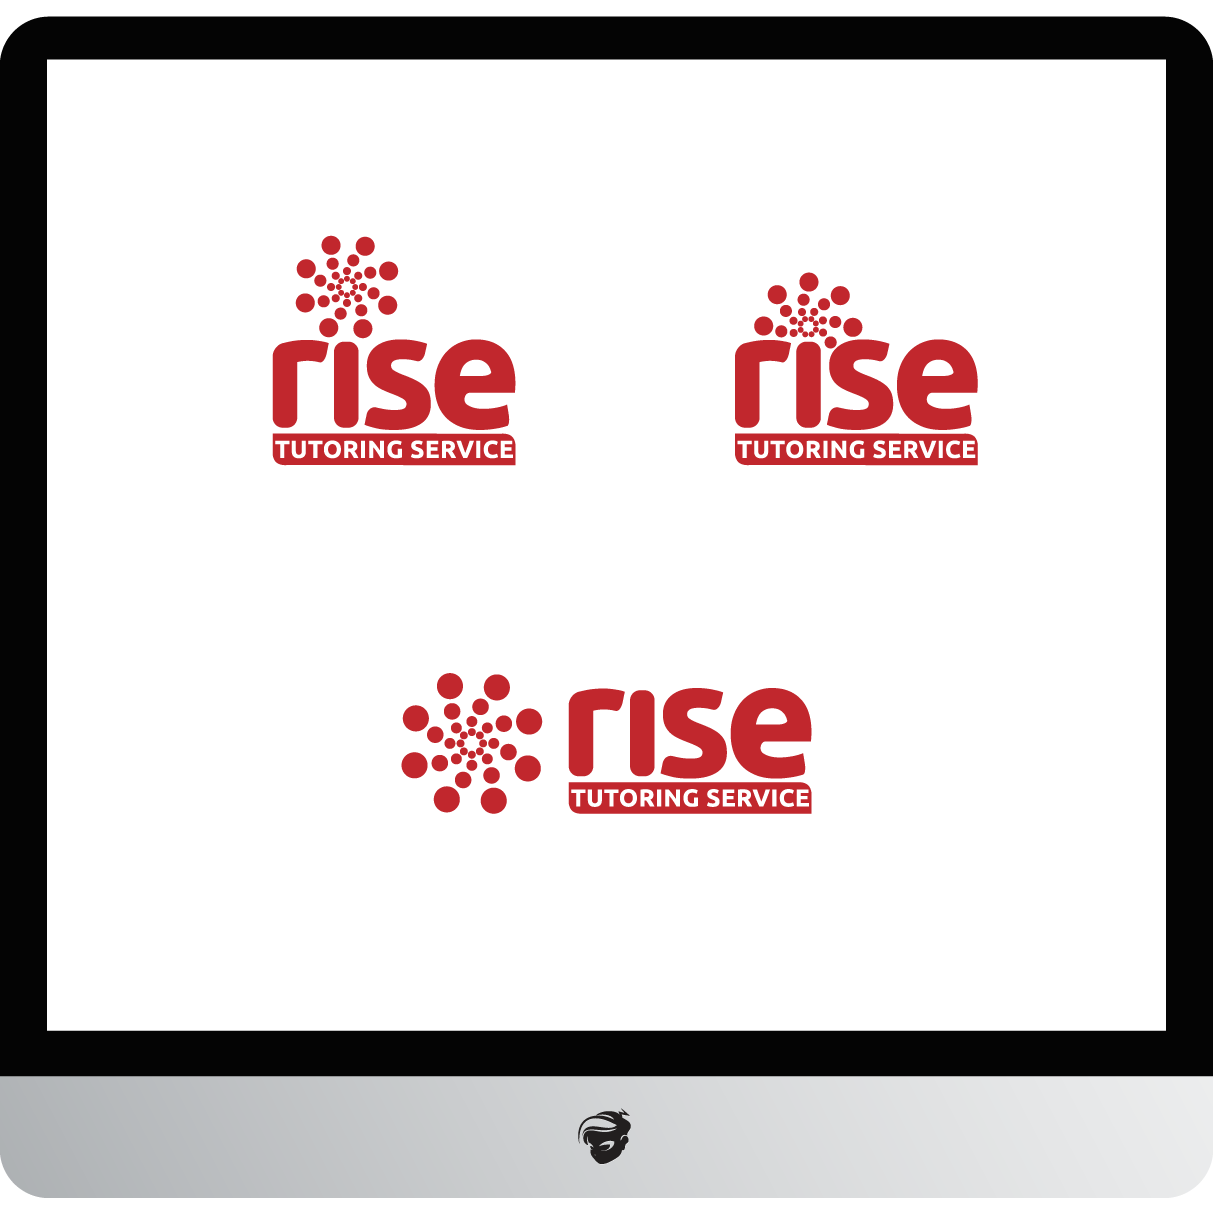 Logo Design by zesthar - Entry No. 227 in the Logo Design Contest Imaginative Logo Design for Rise Tutoring Service.